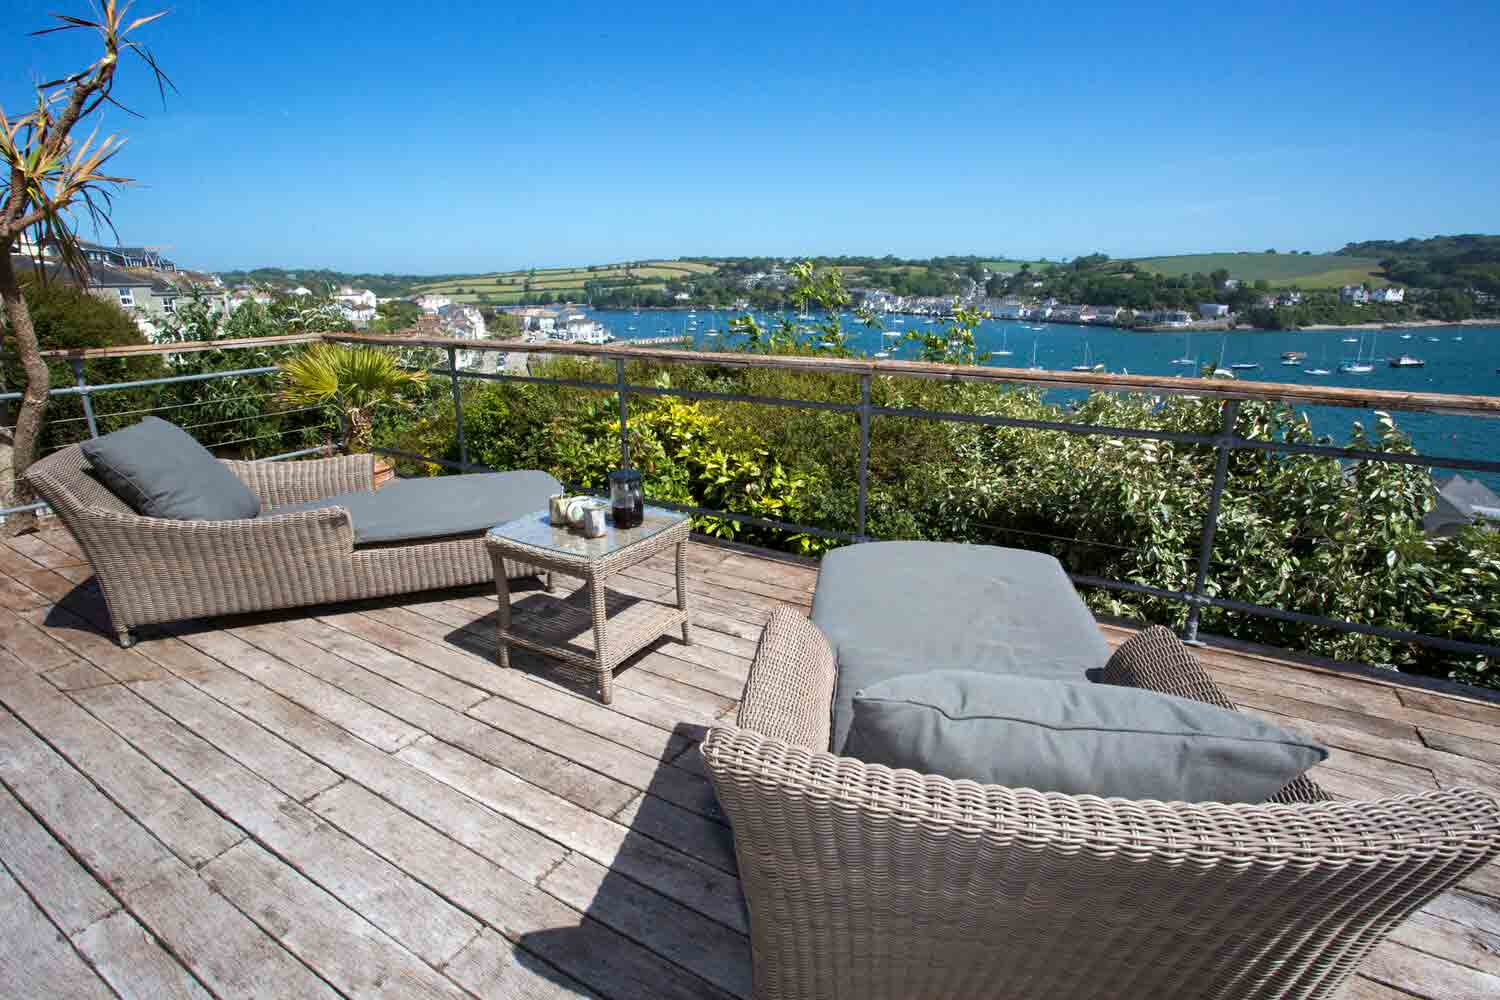 Priceless sea views can be glimpsed from the spacious deck. Image: Jonathan Cunliffe